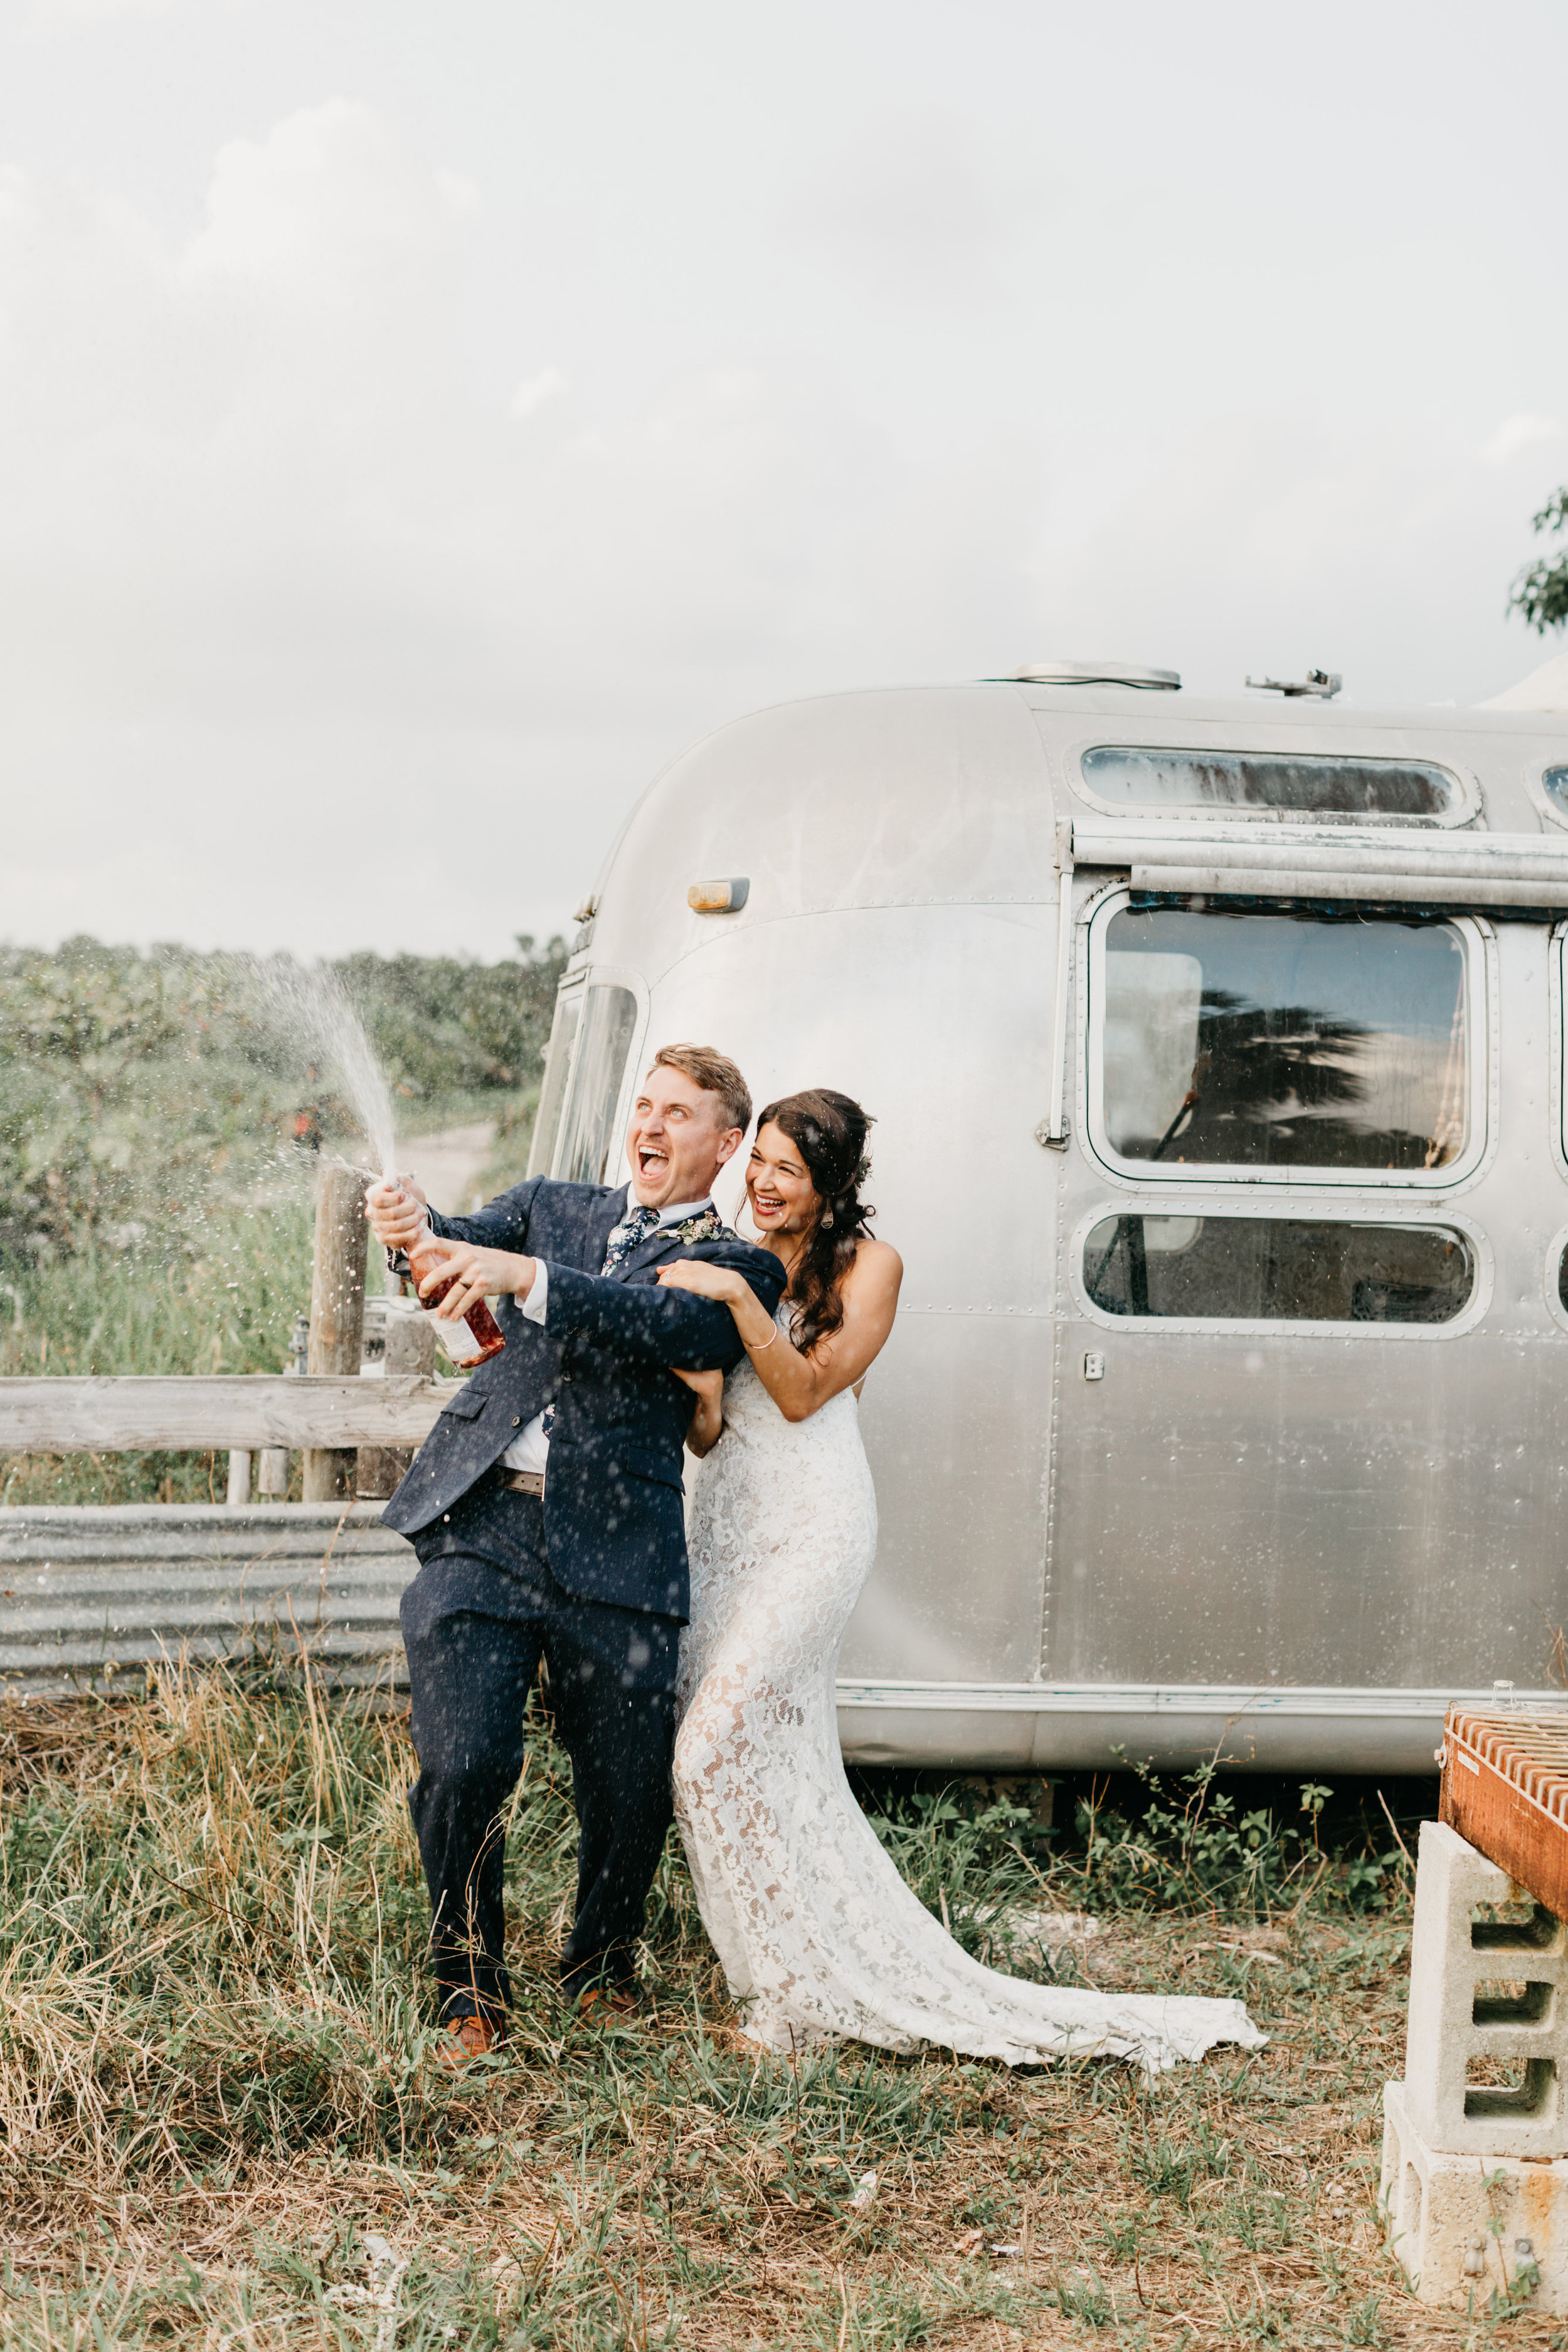 Planning Tips - Rock out your wedding day!!